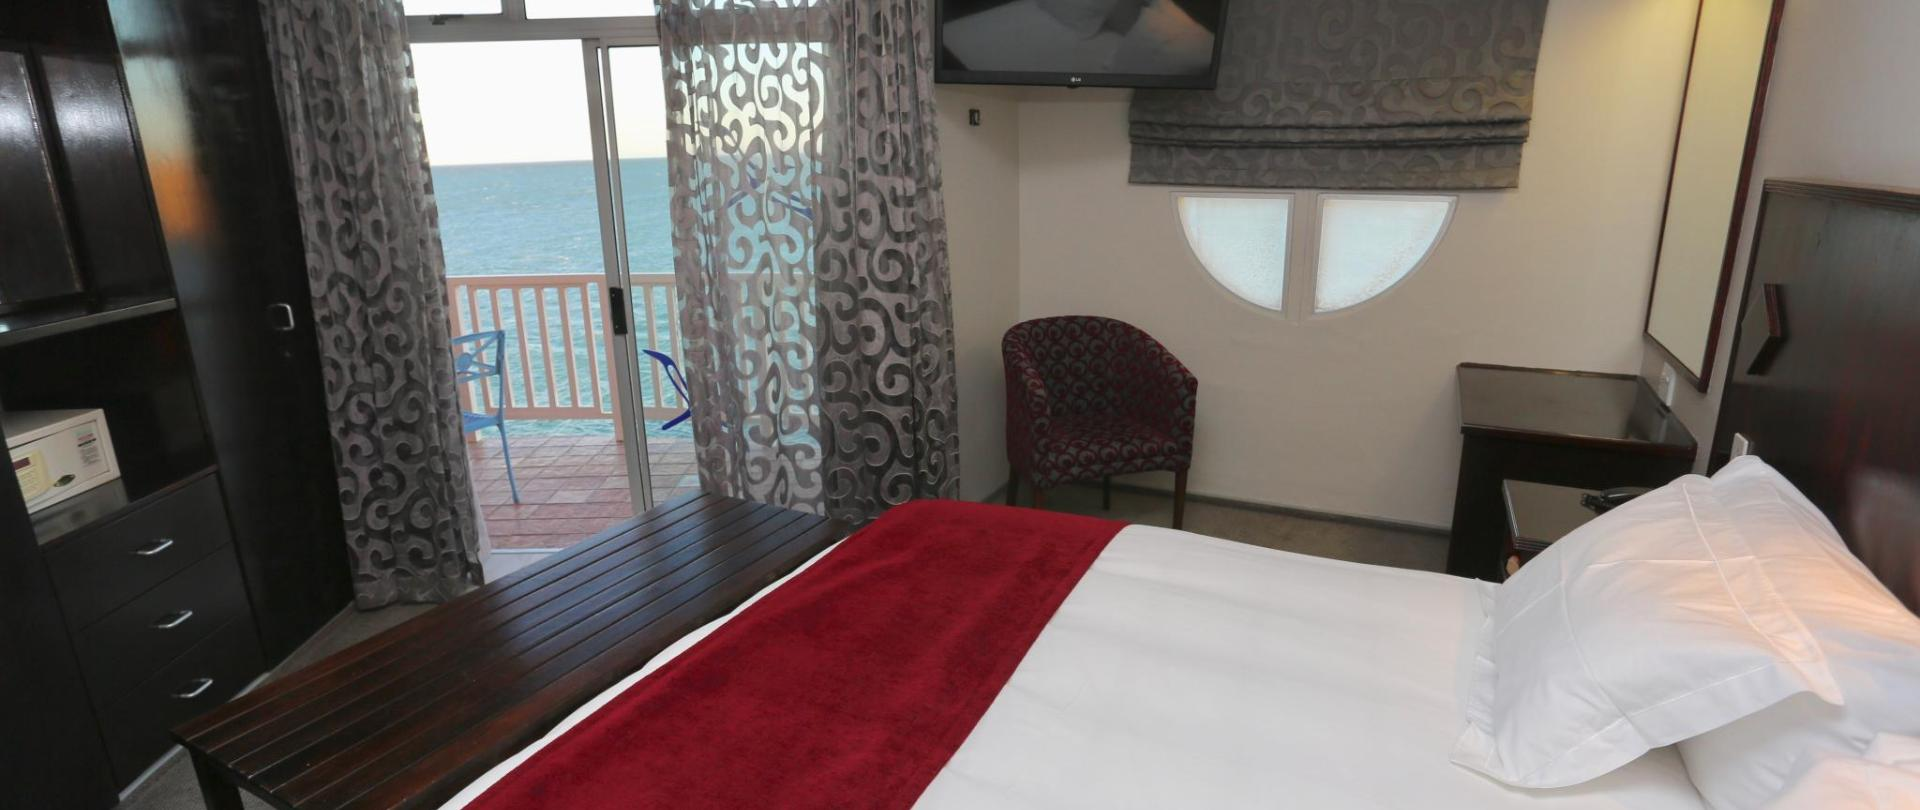 2018年豪华套房BEDROOM SEAVIEW.001.jpg